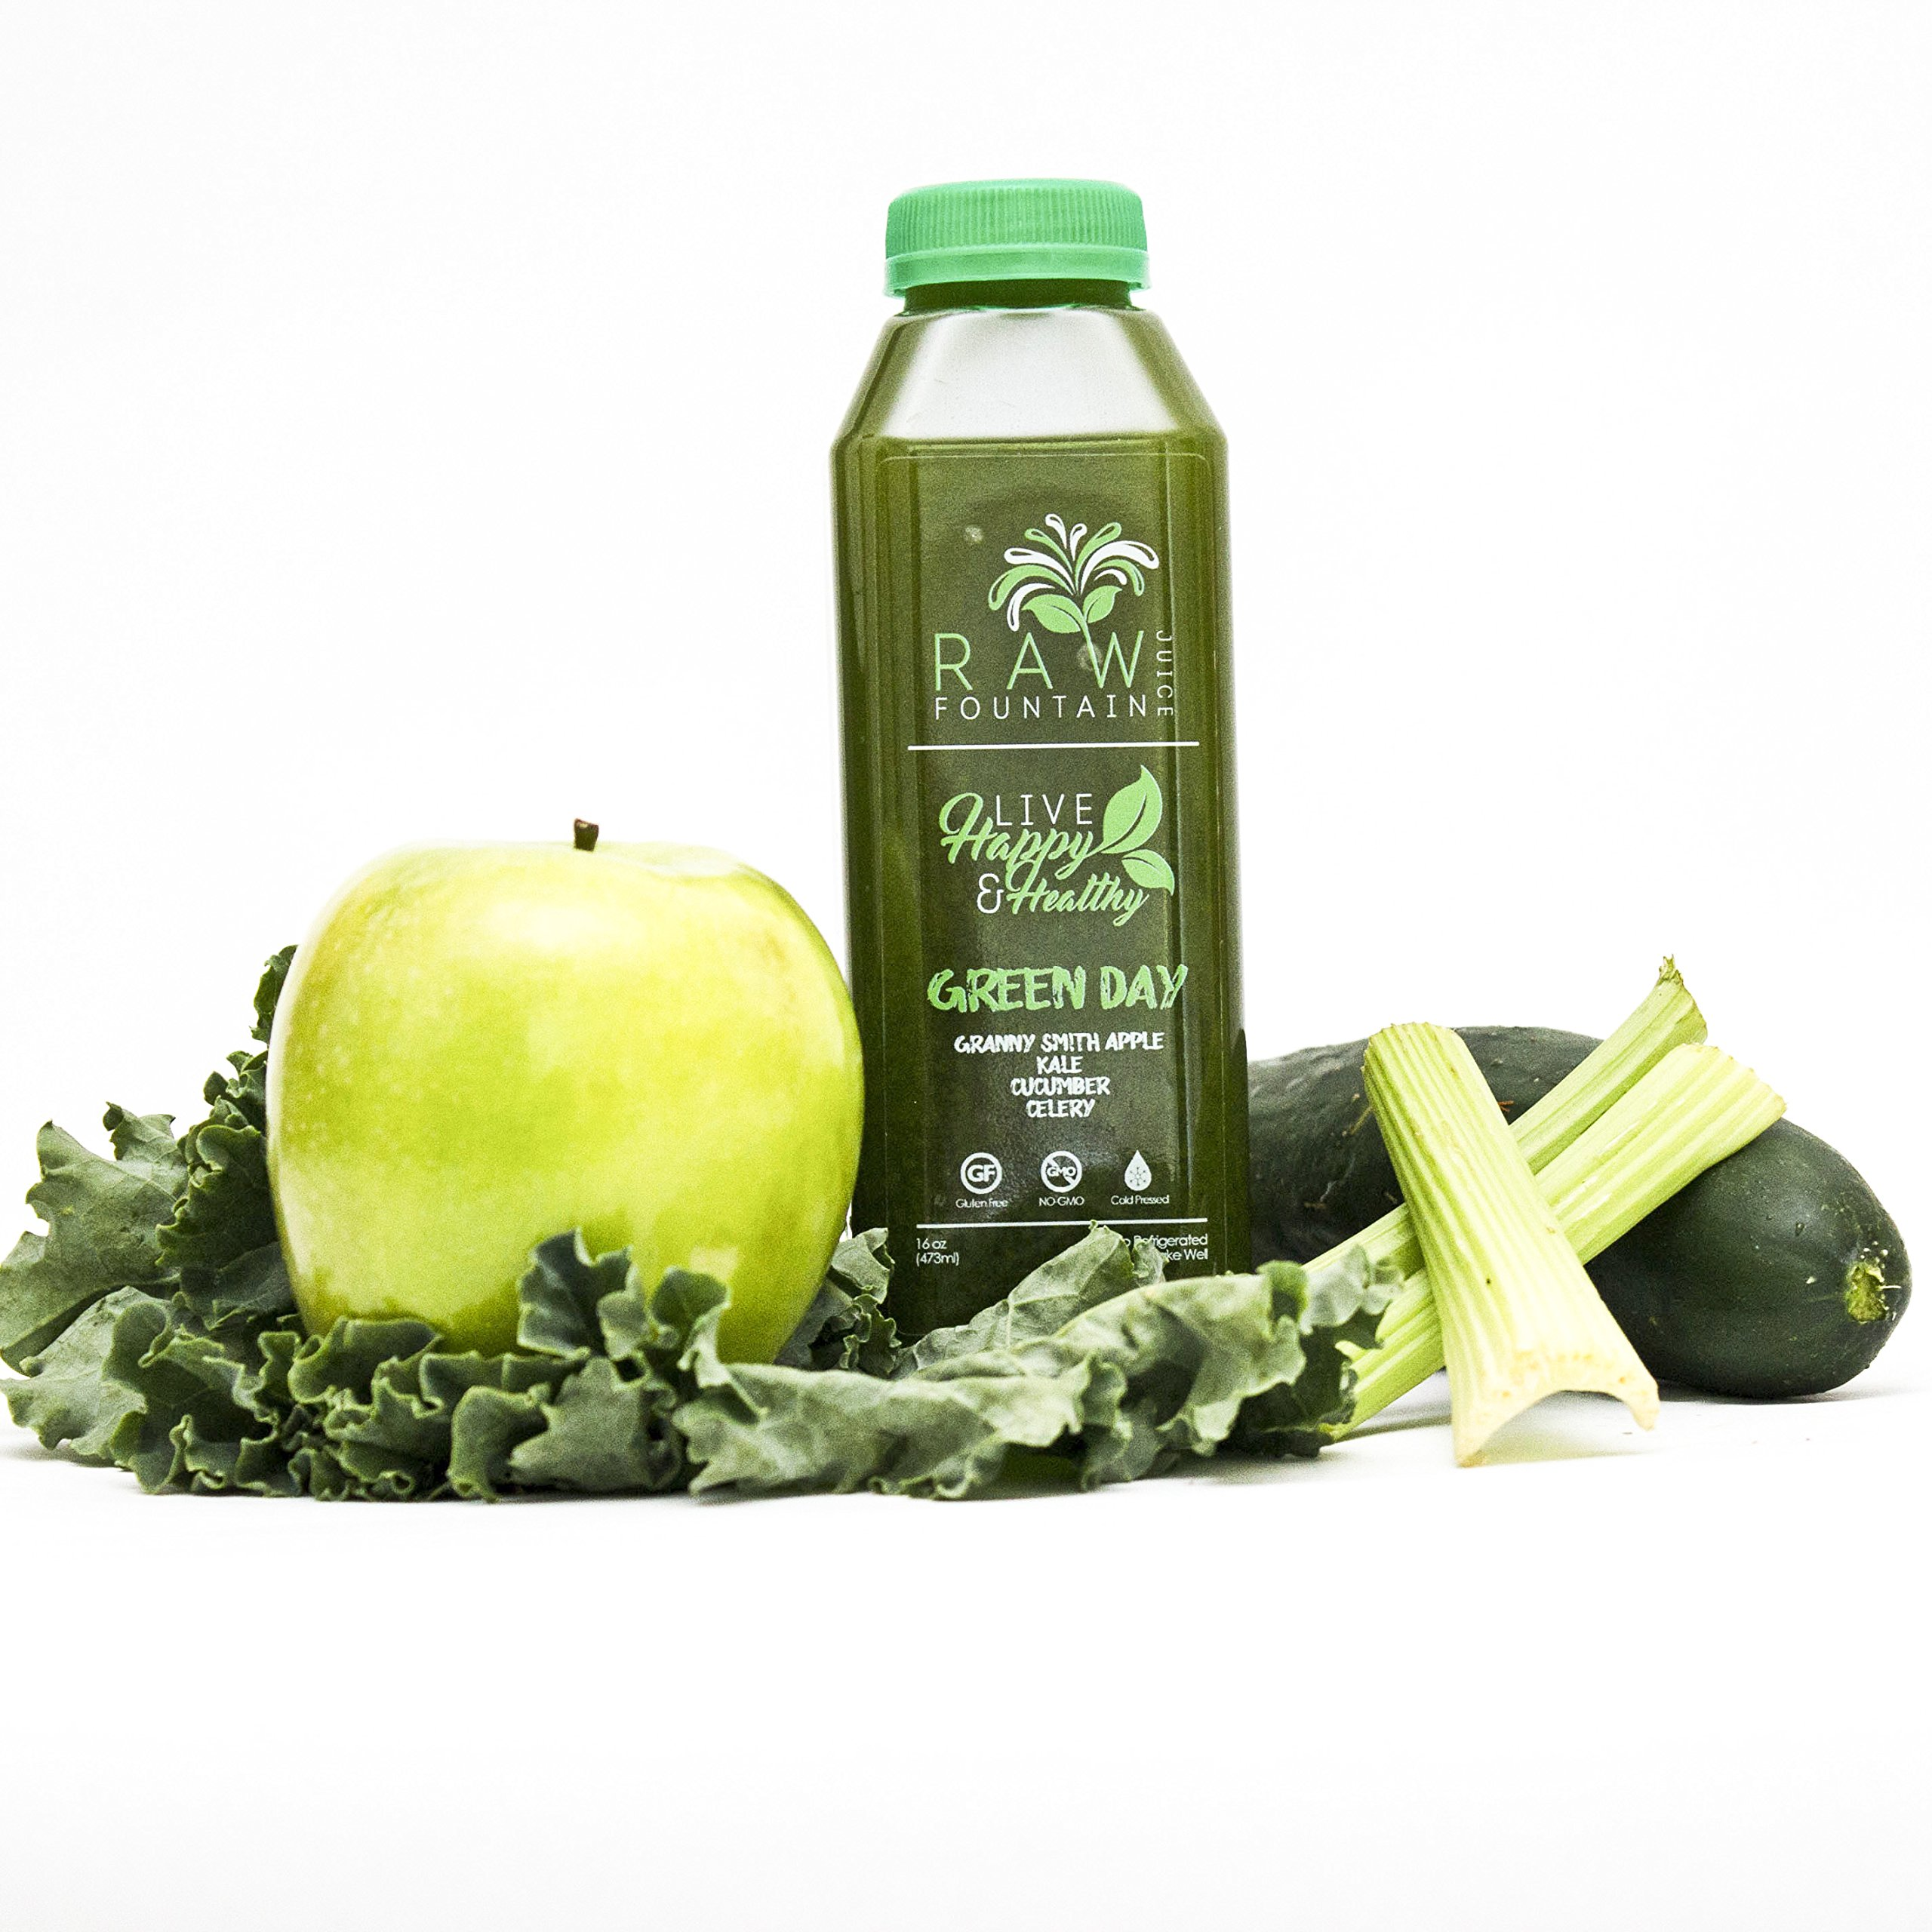 7 Day Juice Cleanse by Raw Fountain Juice - 100% Fresh Natural Organic Raw Vegetable & Fruit Juices - Detox Your Body in a Healthy & Tasty Way! - 42 Bottles (16 fl oz) + 7 BONUS Ginger Shots by Raw Threads (Image #7)